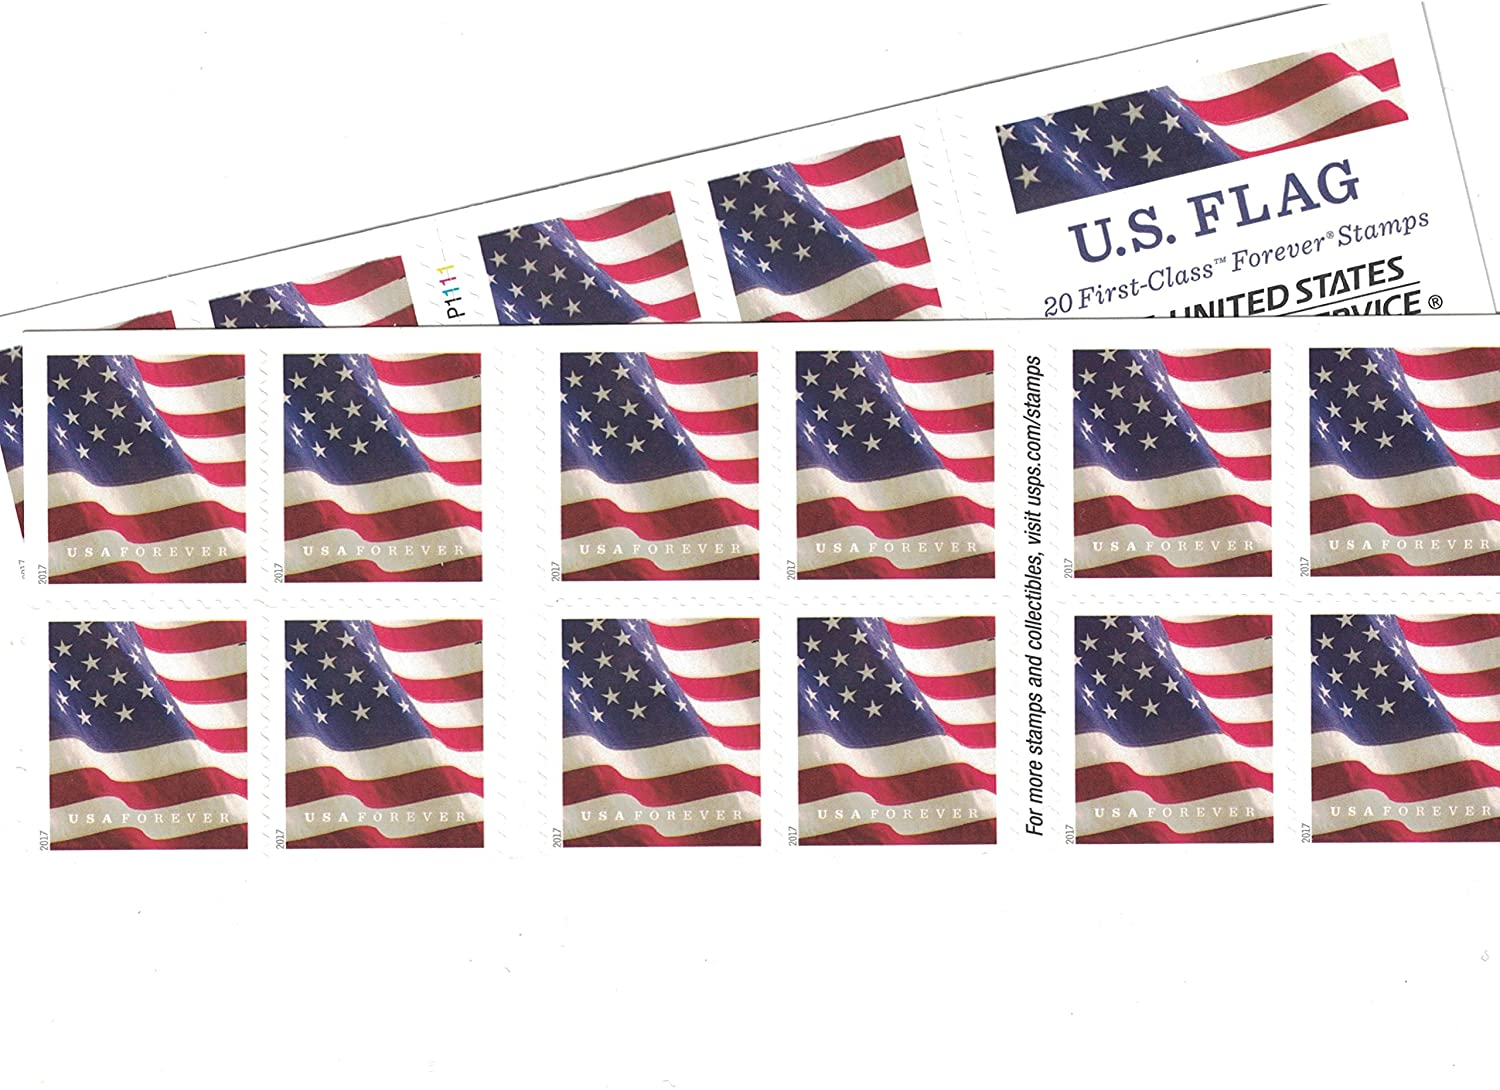 How Many Forever Stamps To Mail A Letter To Canada.Usps Us Flag Forever Stamps 40 Us Flag Forever Stamps 40 Stamps Two Books Of 20 Packaging May Vary Blue Red White